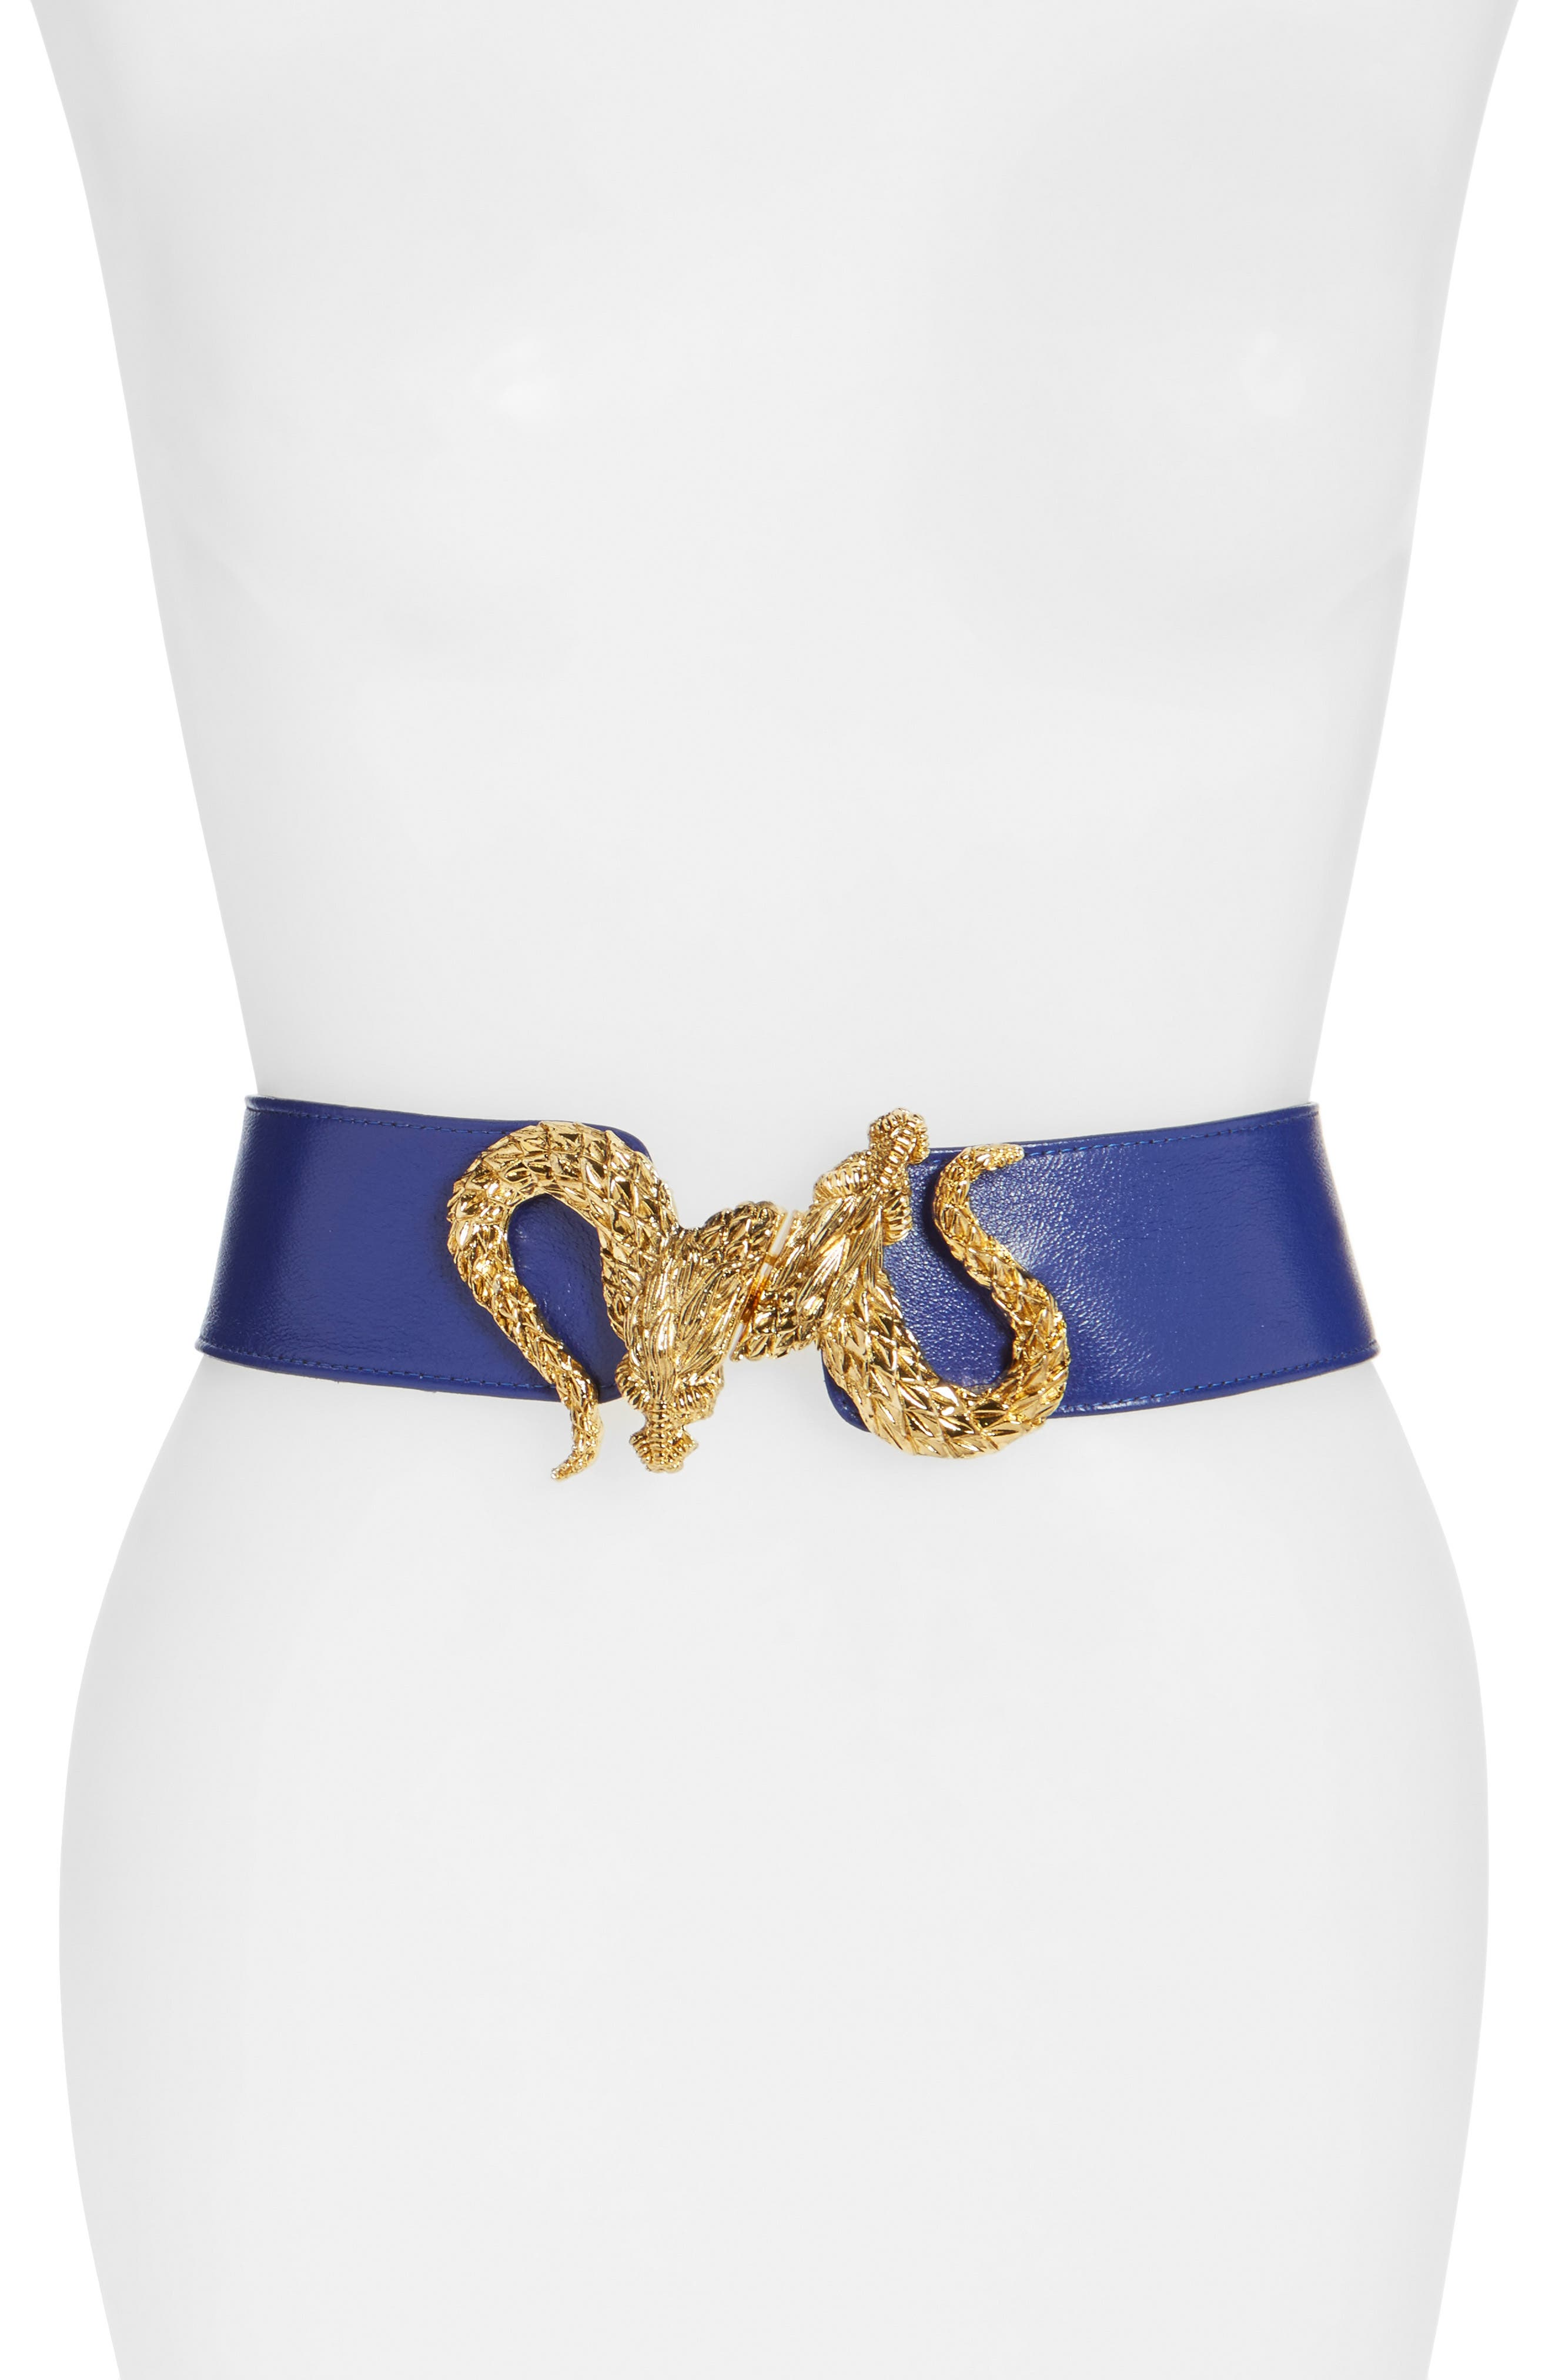 Raina 'Penelope - Dragon' Stretch Belt